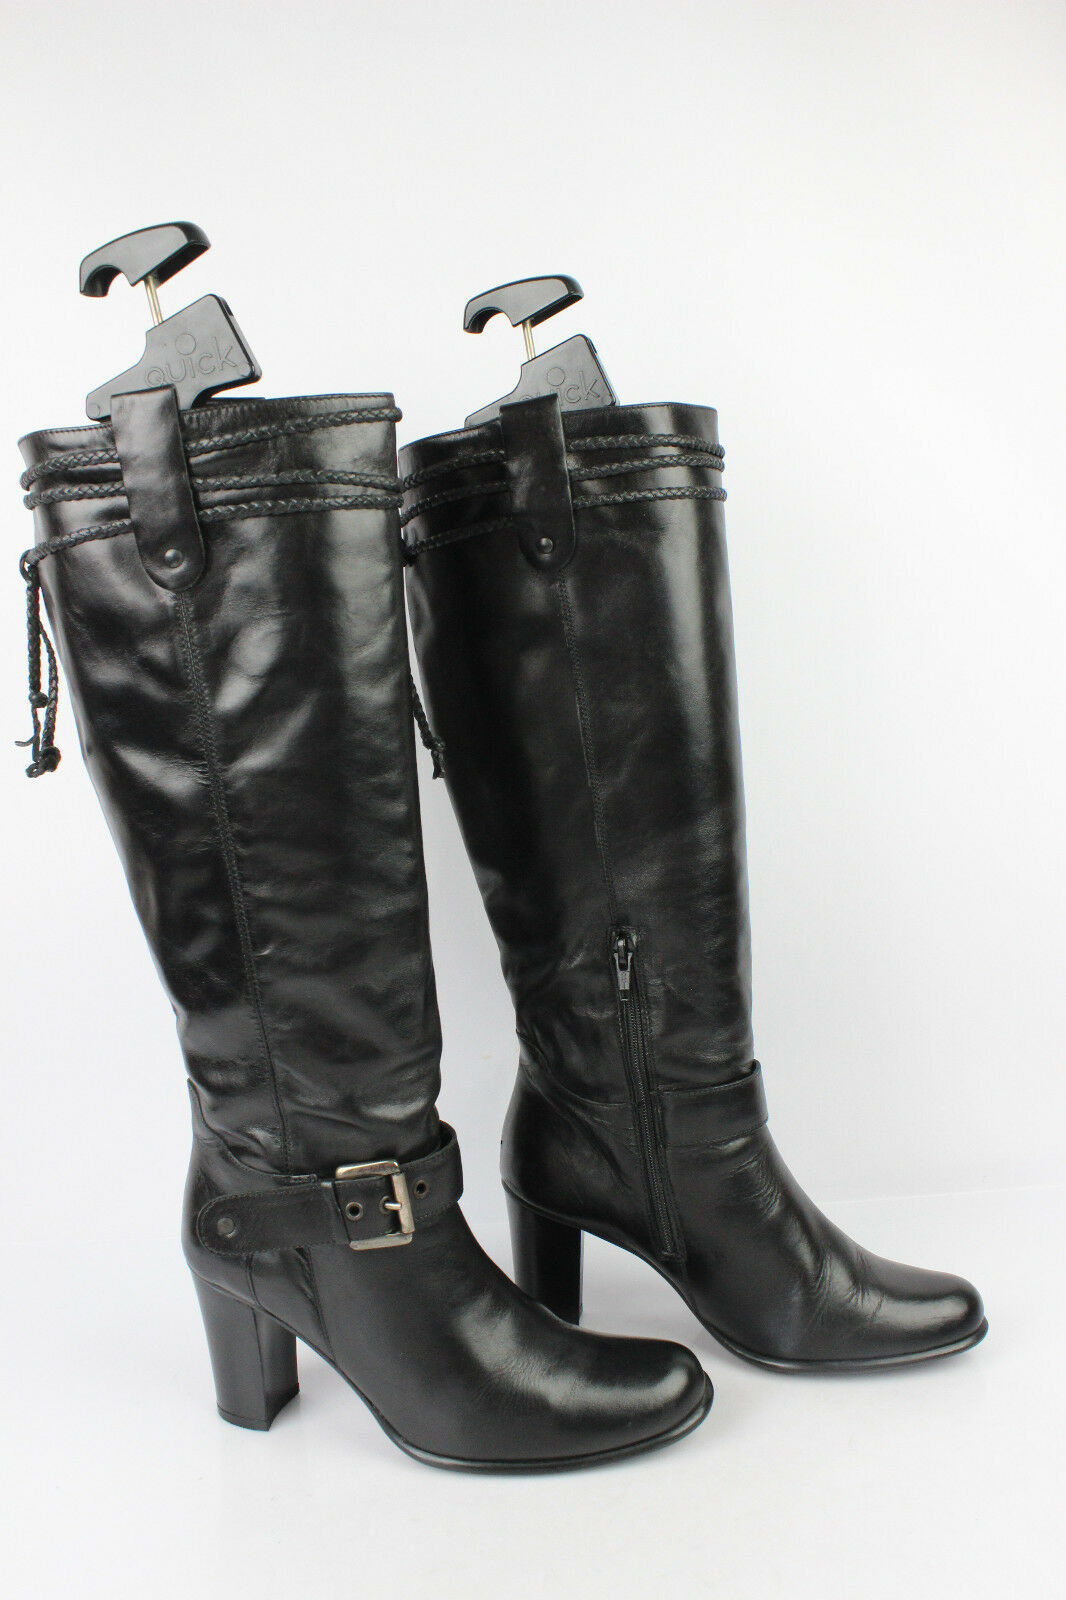 Boots SAN MARINA Leather Black T 38 VERY GOOD CONDITION